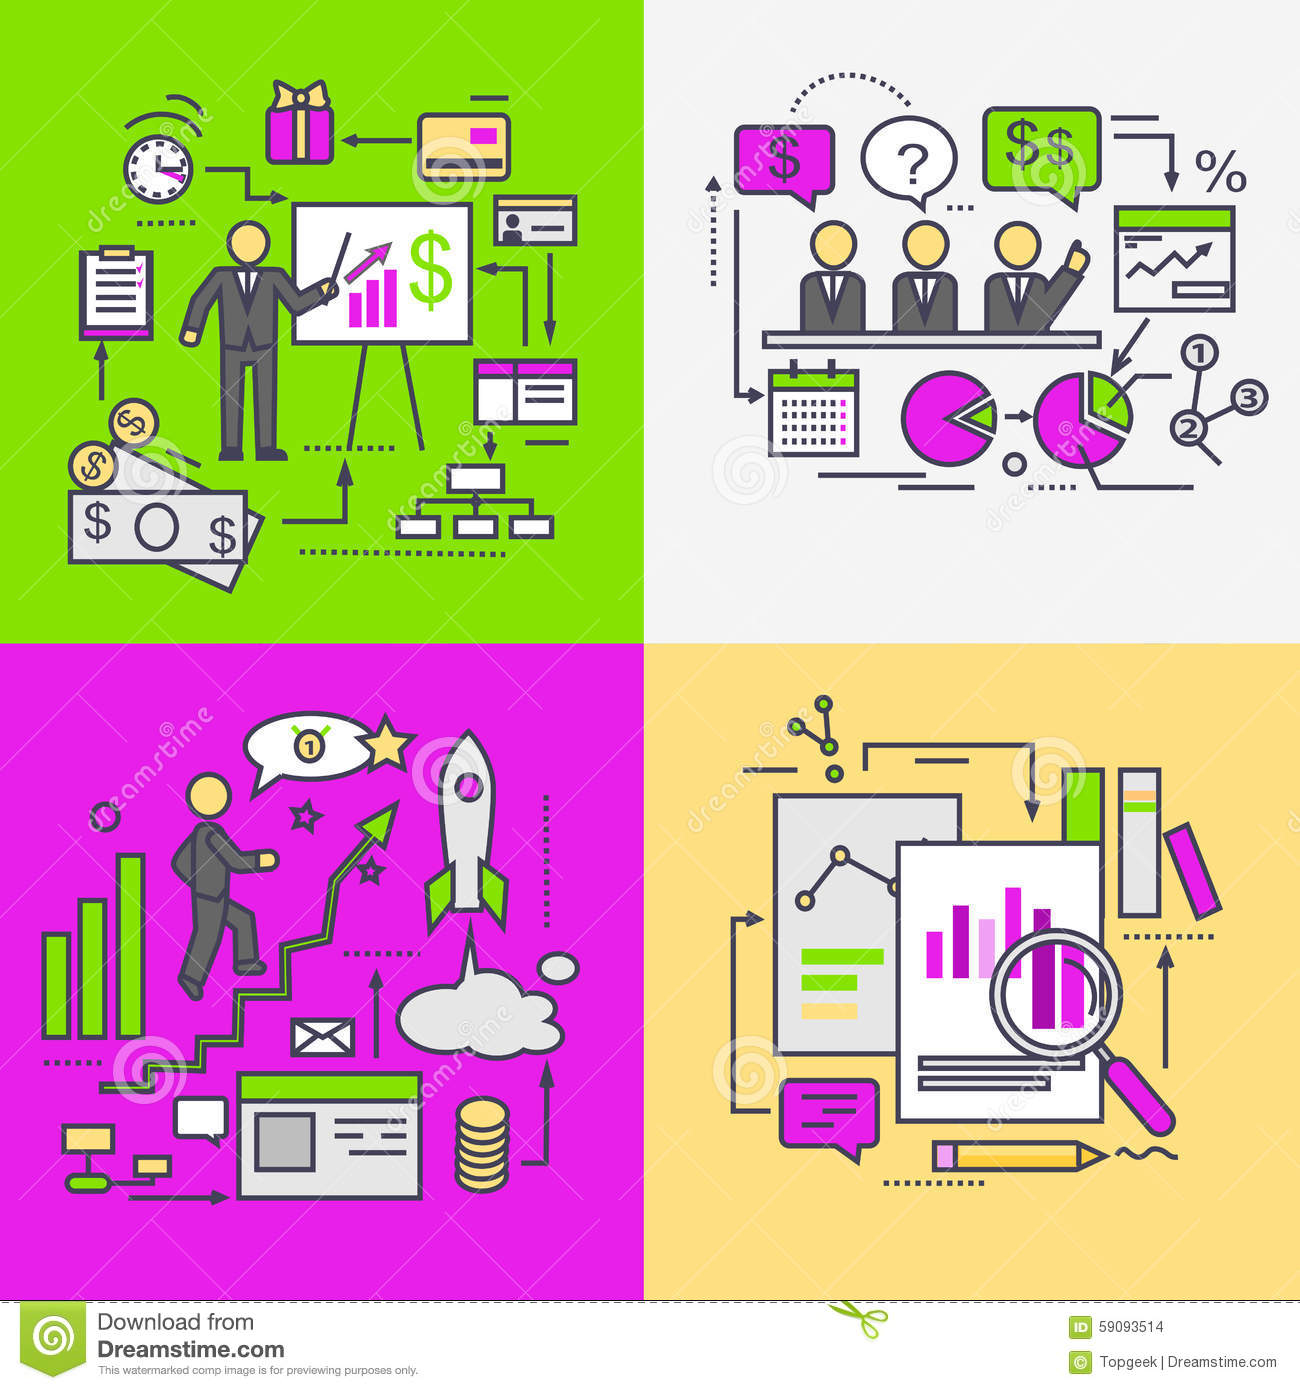 Business Data Analysis And Planning Startup Vector Image – Financial Data Analysis